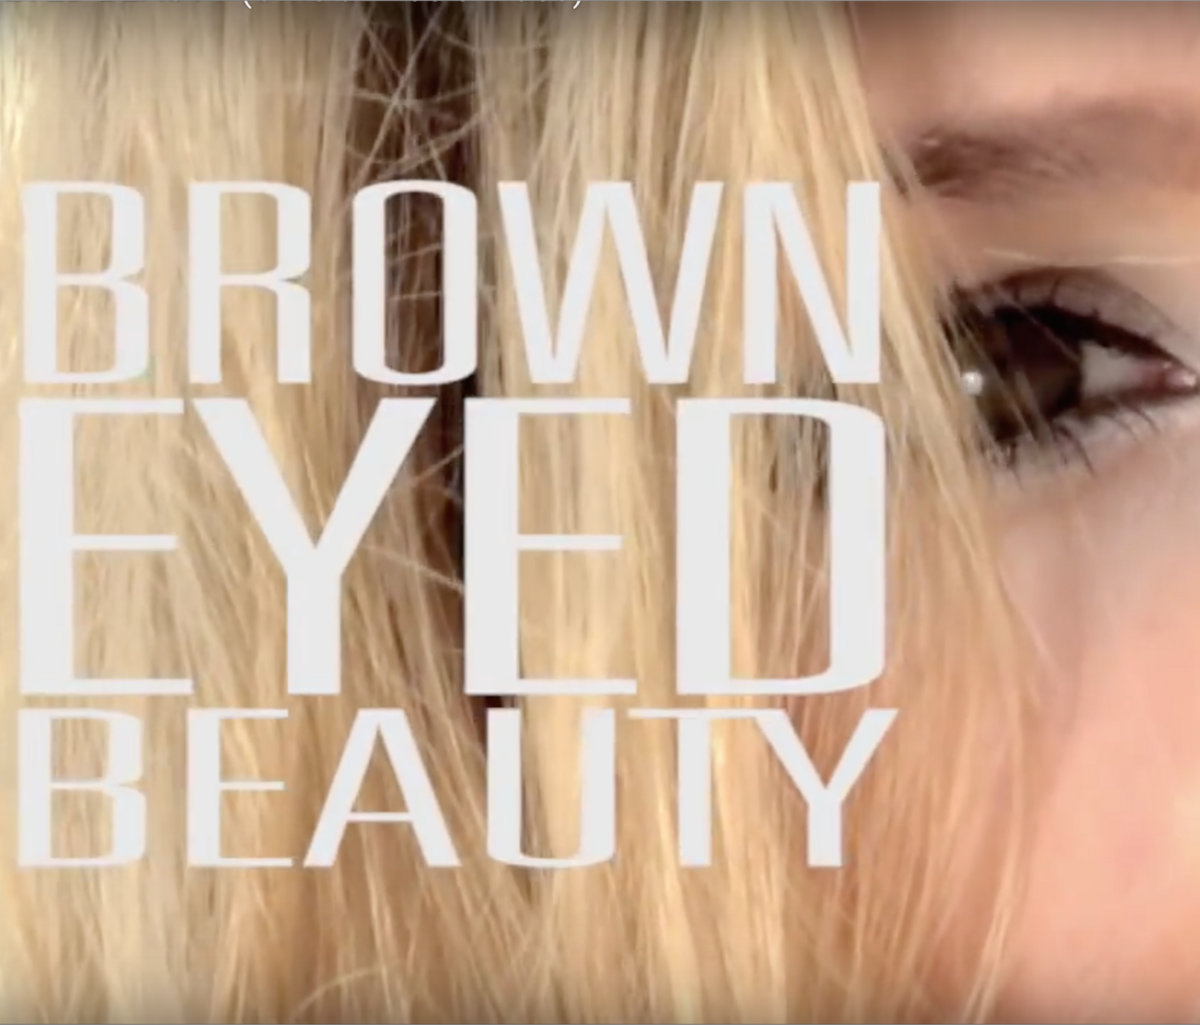 Brown Eyed Beauty by Reverse Mechanic